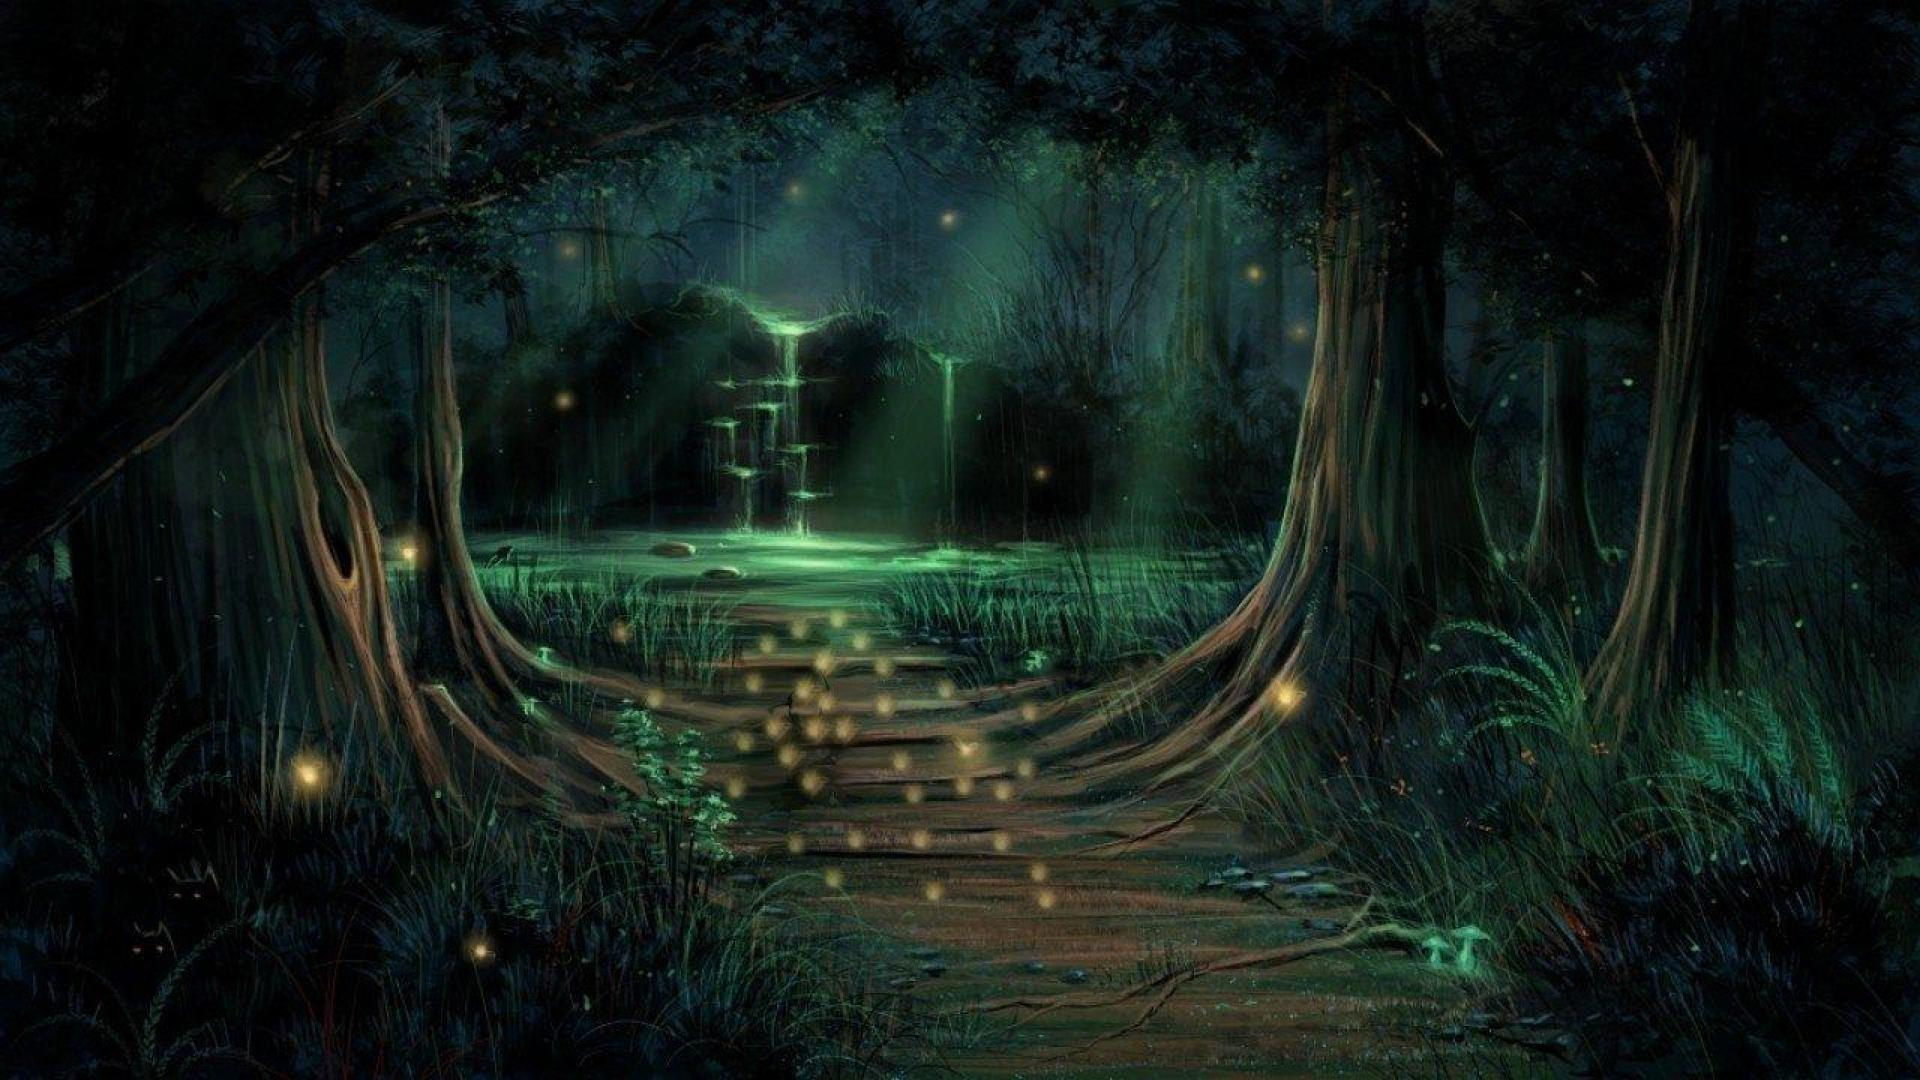 Good Wallpaper Night Forest - magical-forest-wallpaper-14  Best Photo Reference-218823.jpg